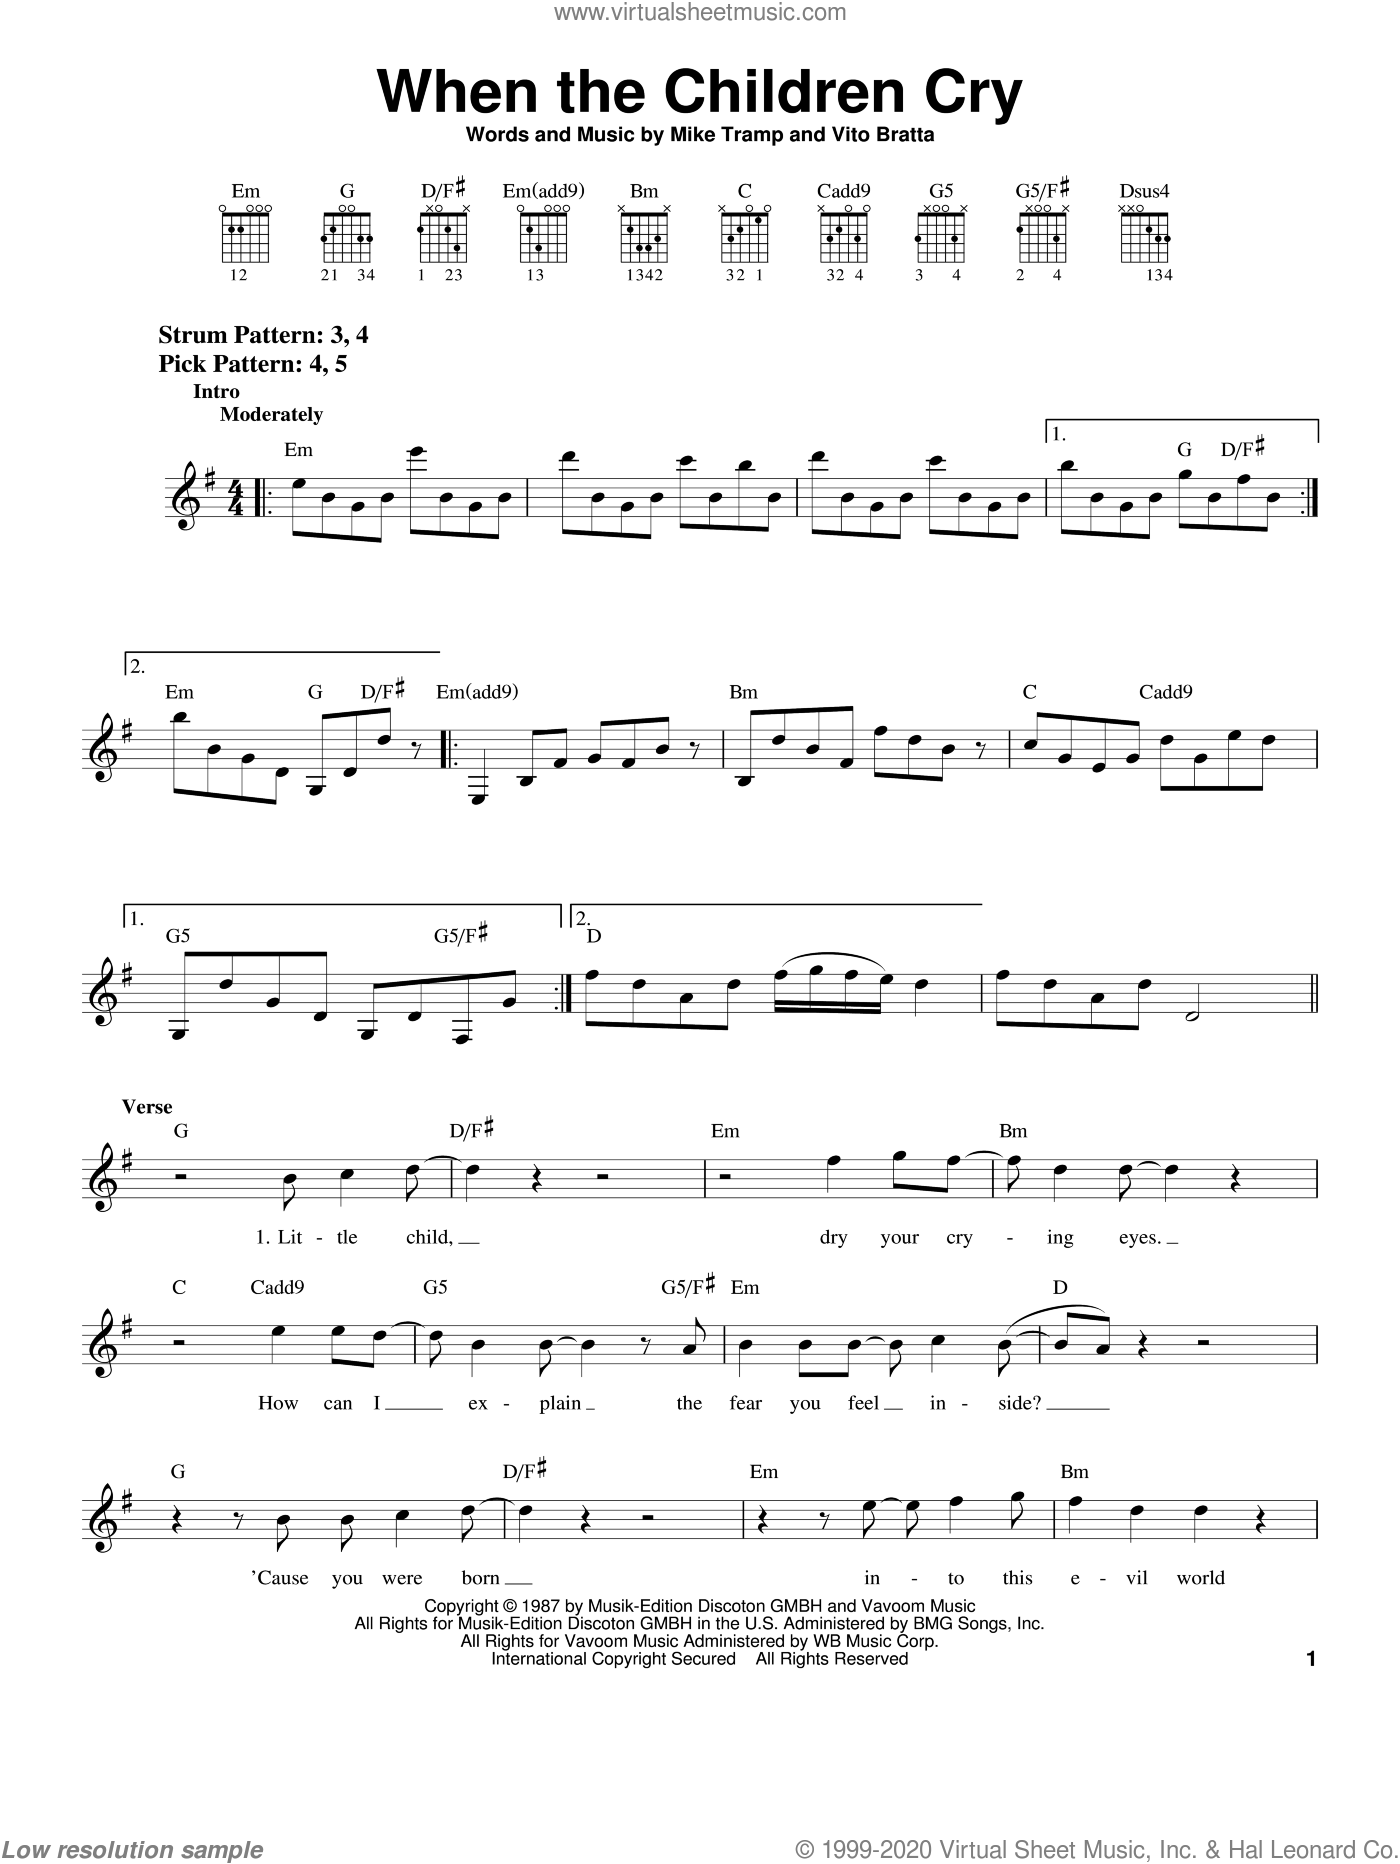 When The Children Cry sheet music for guitar solo (chords) by Vito Bratta, White Lion and Mike Tramp. Score Image Preview.